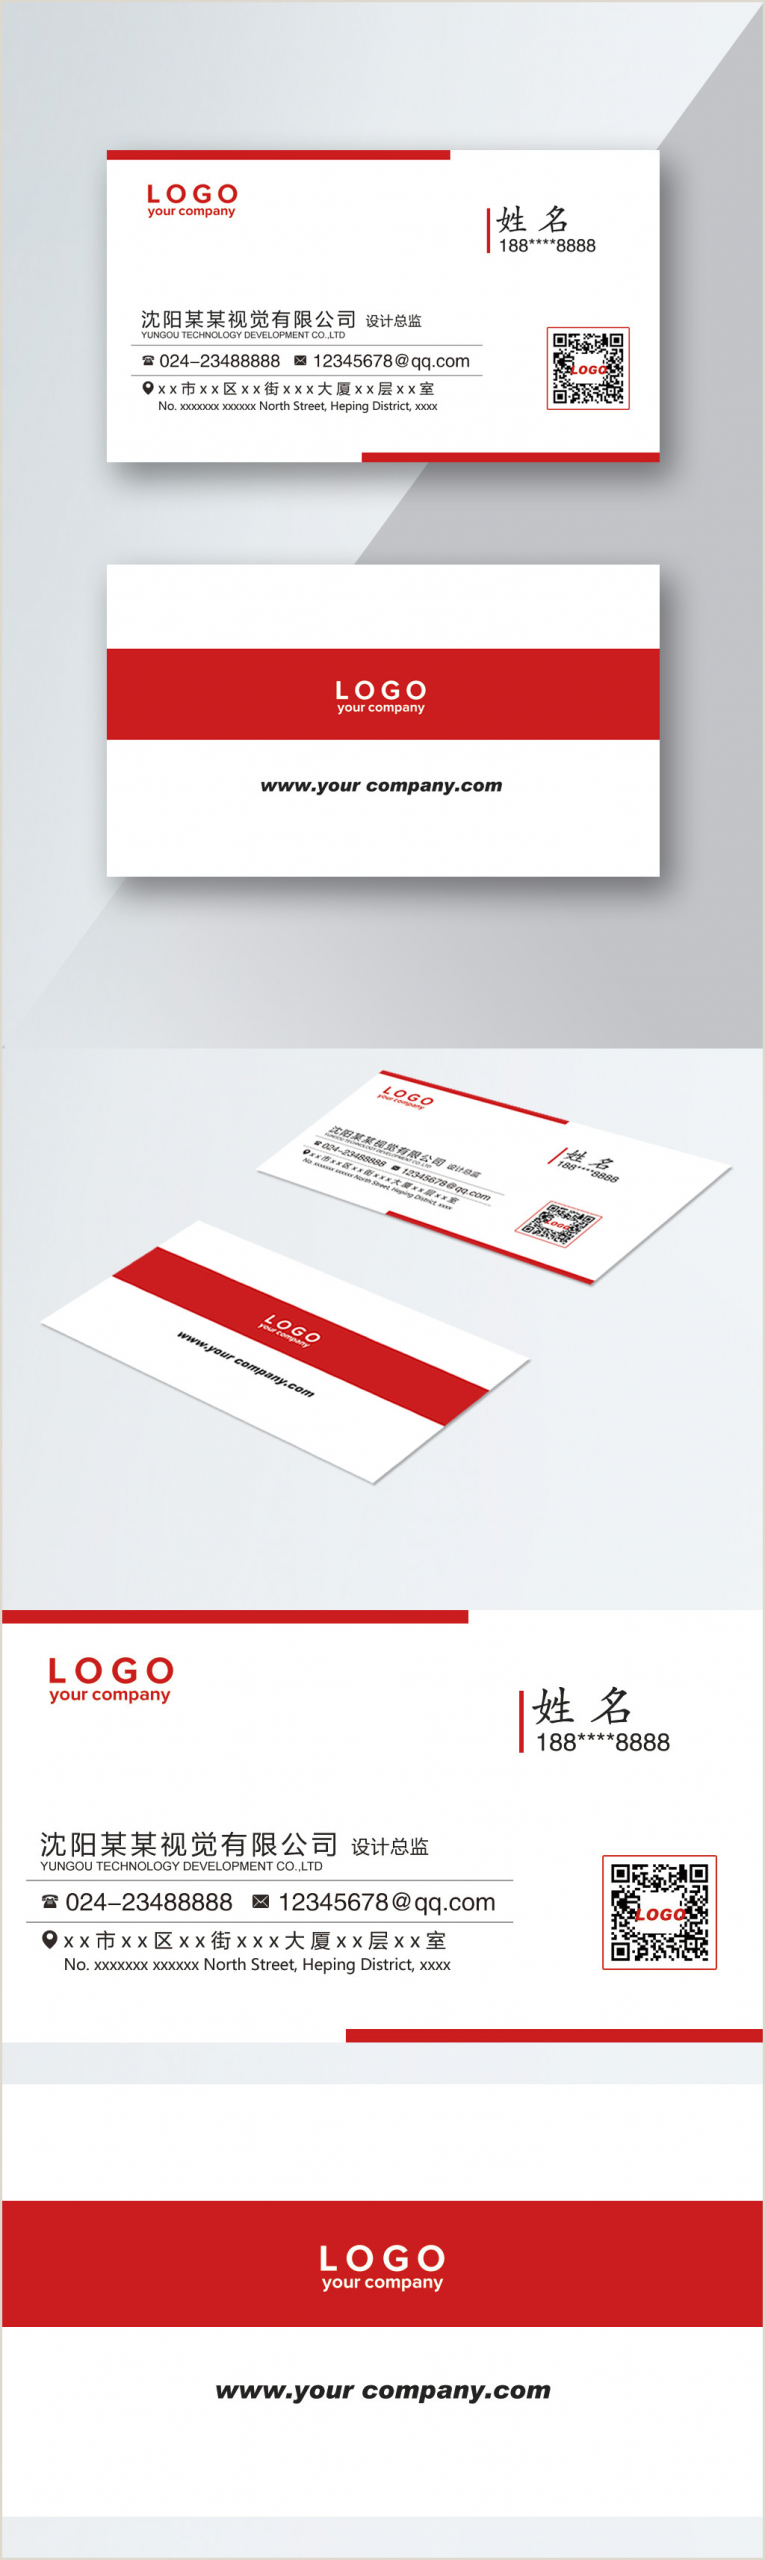 Personal Business Cards Designers Personal Business Card Design Template